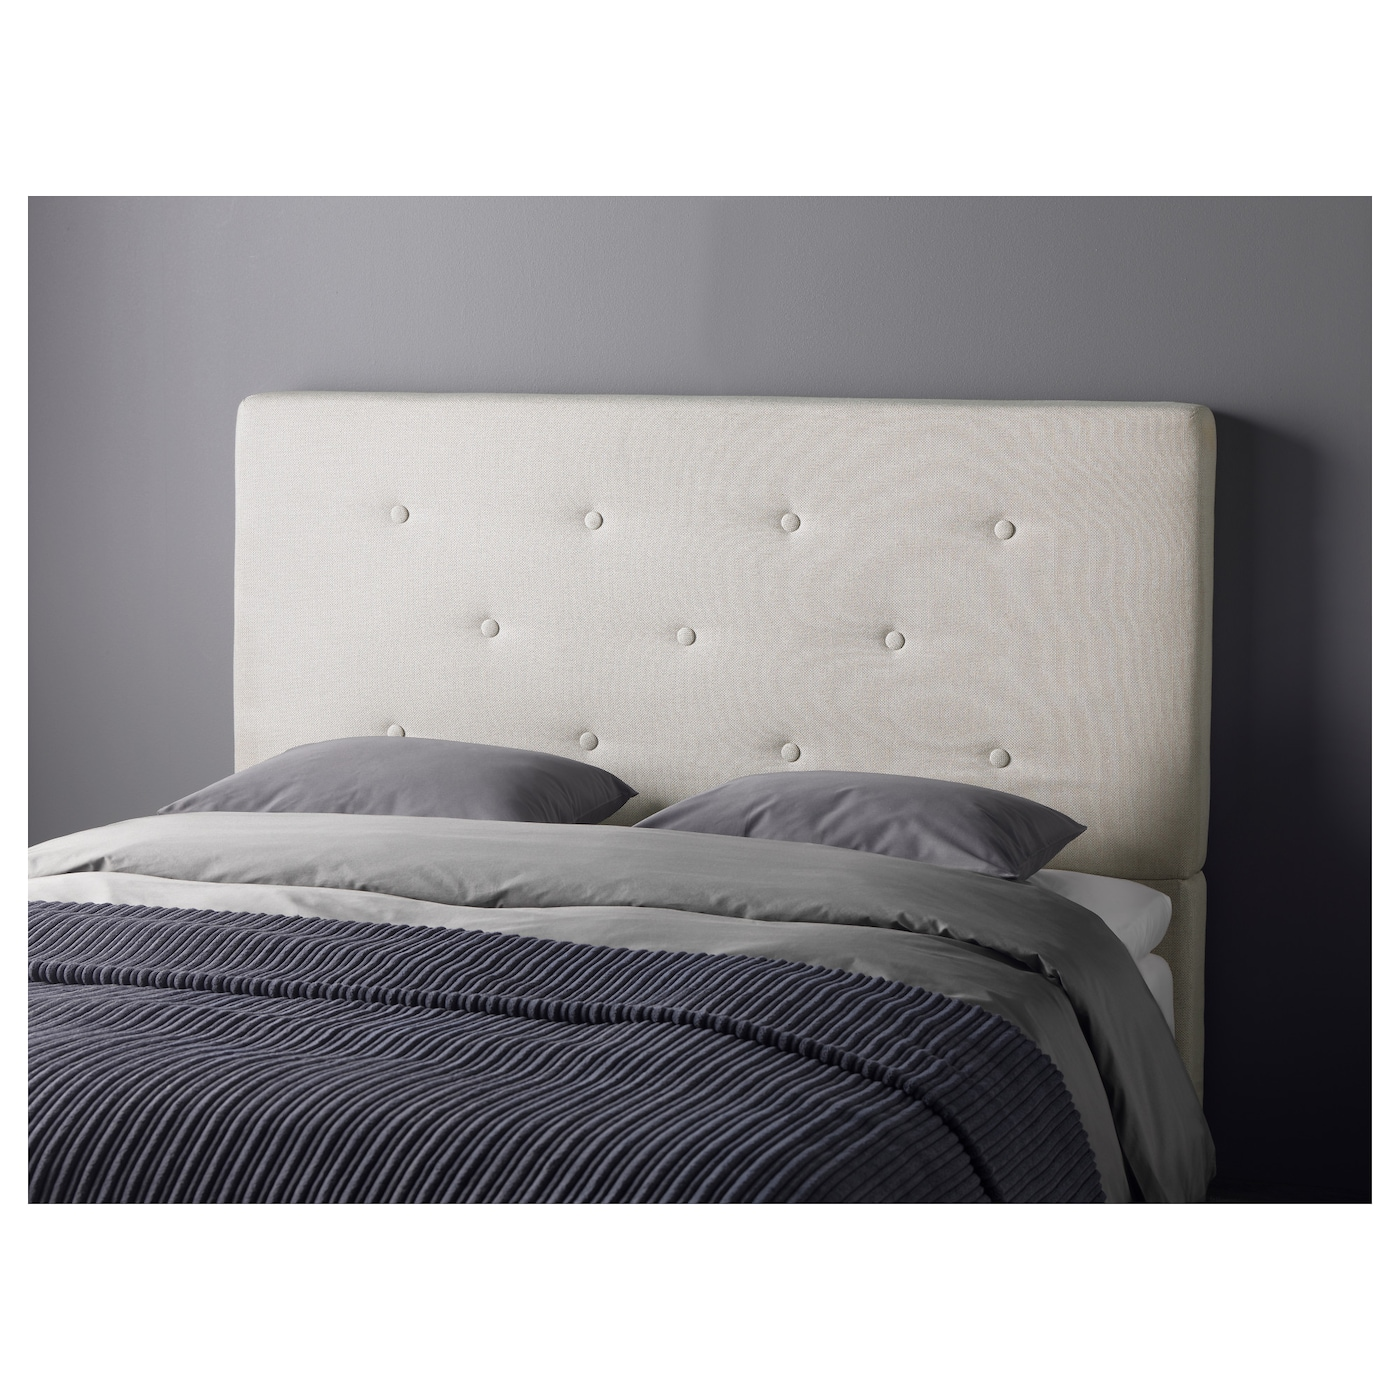 padded upholstered frame ikea and images cal queen gallery bedroom king california headboard also headboards